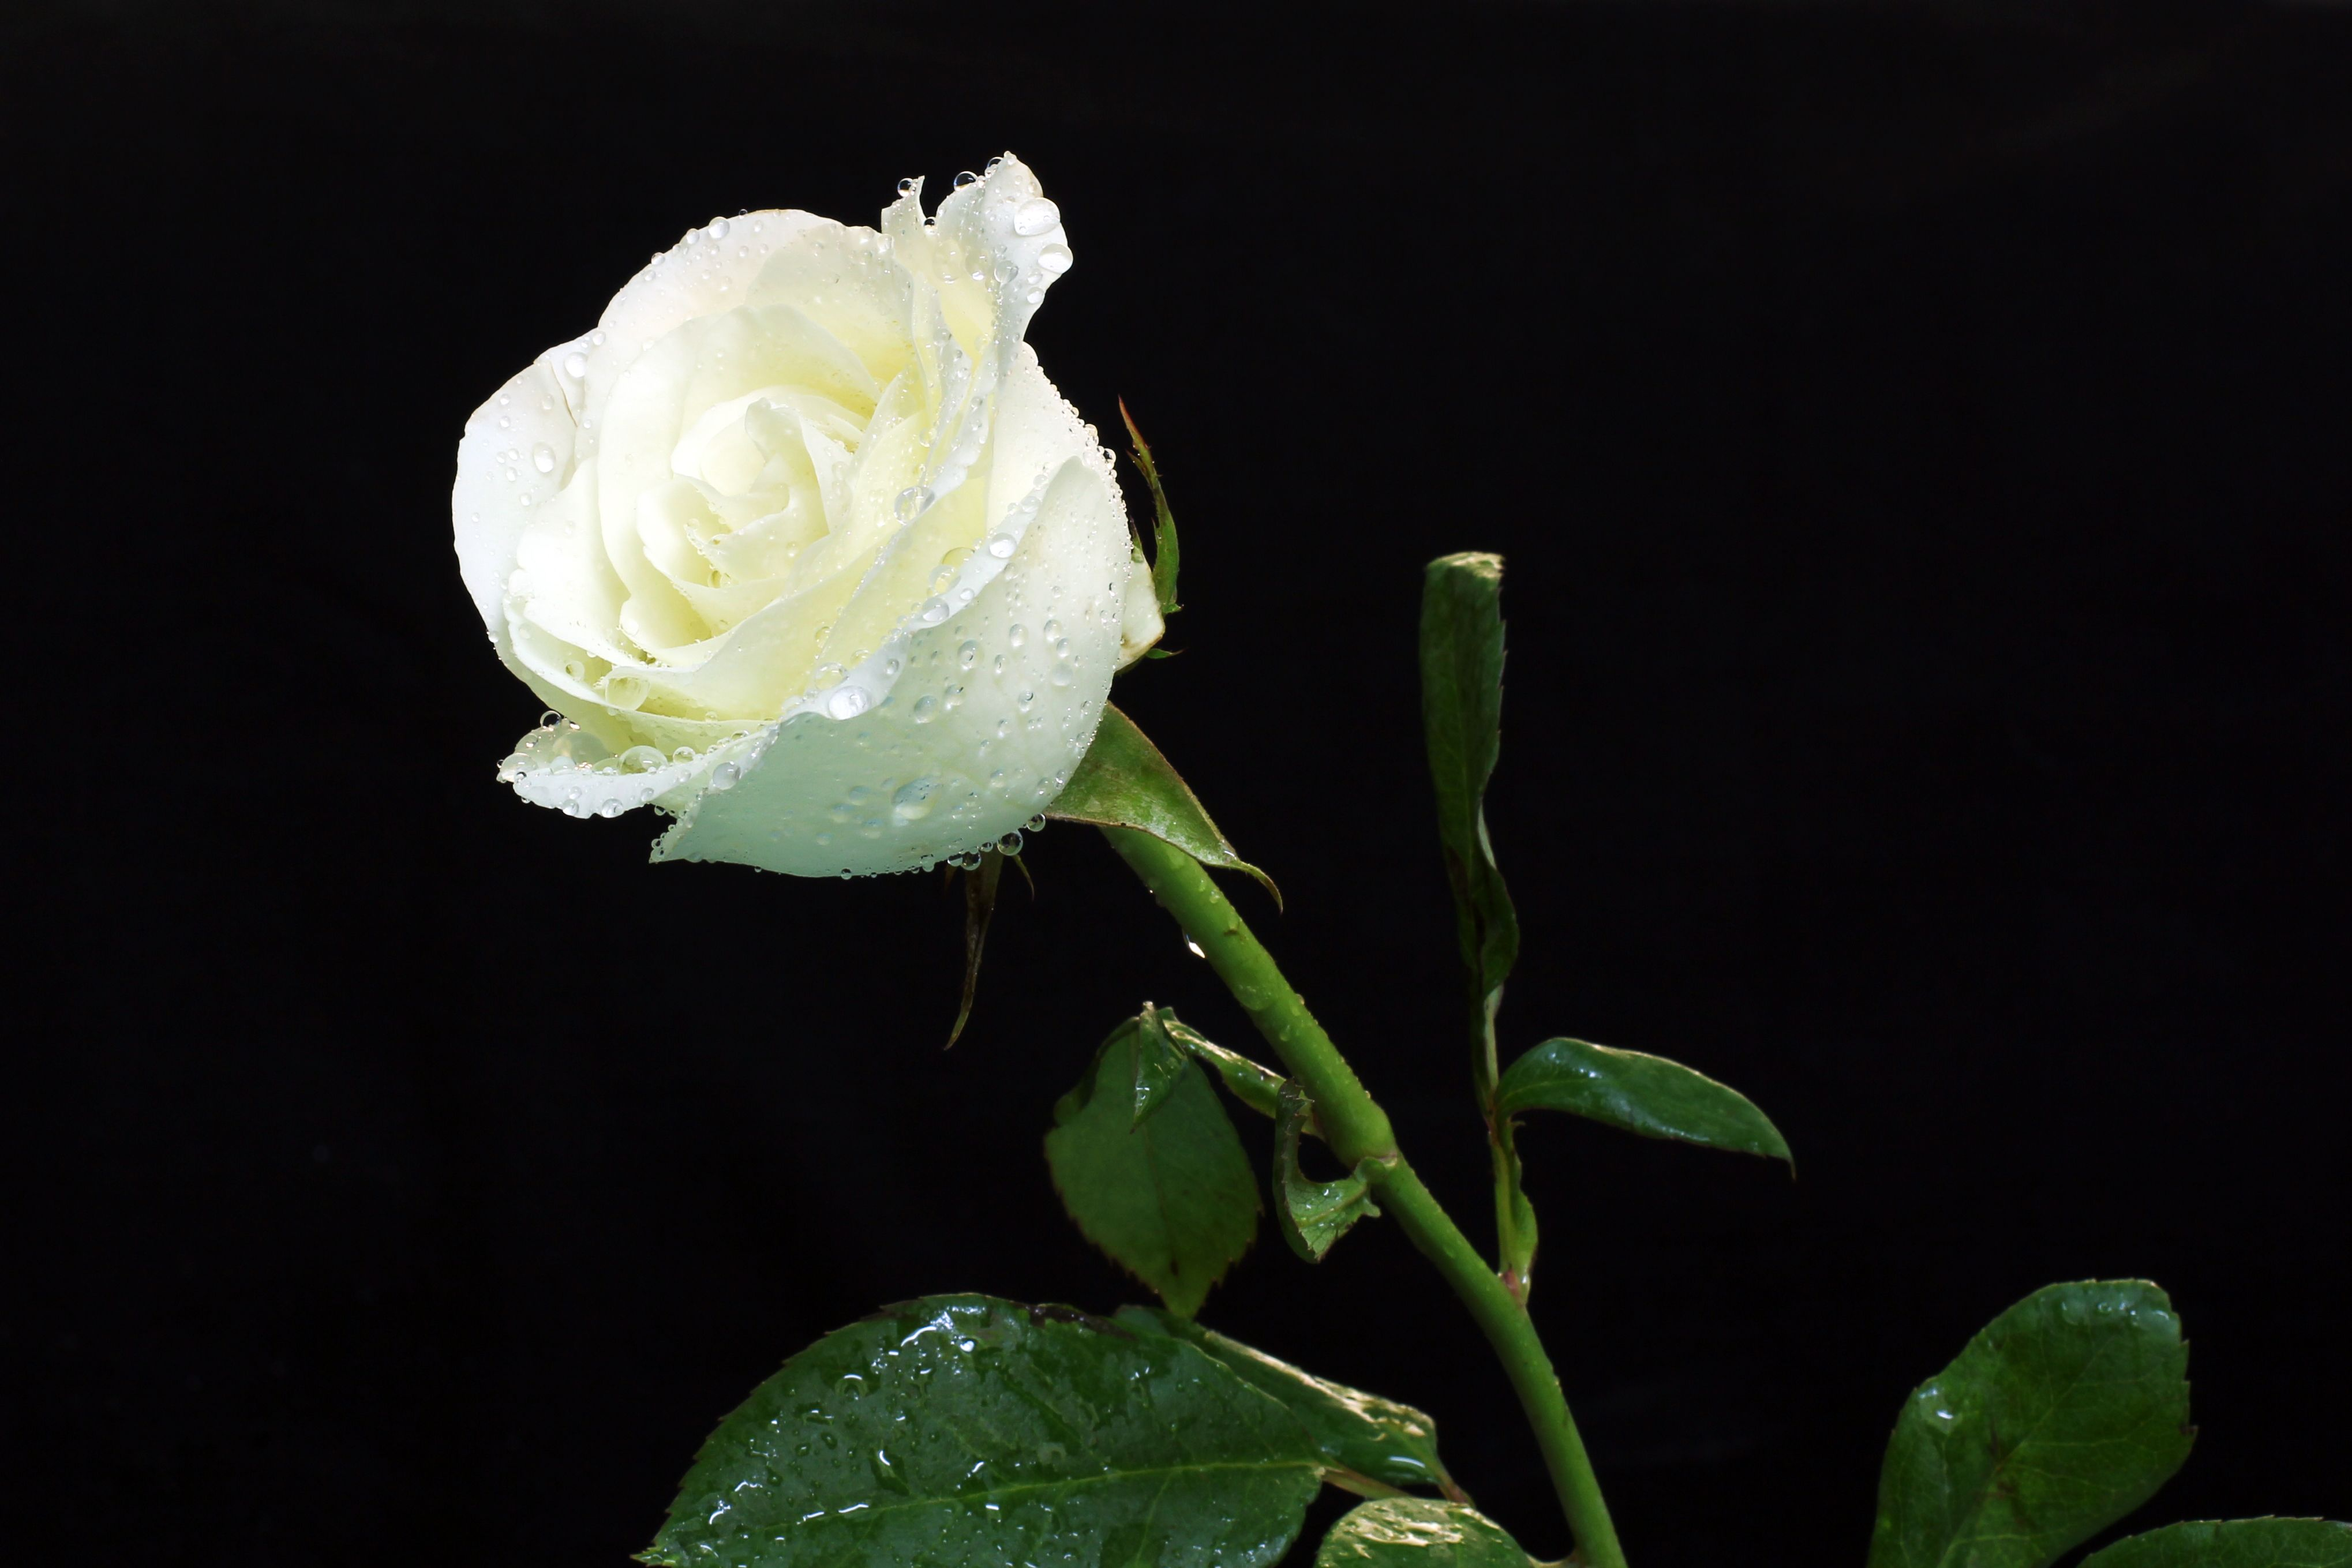 White Rose On Black Background Wallpaper And Photo Download By Photosof Org White Roses Rose Wallpaper Rose Flower Wallpaper